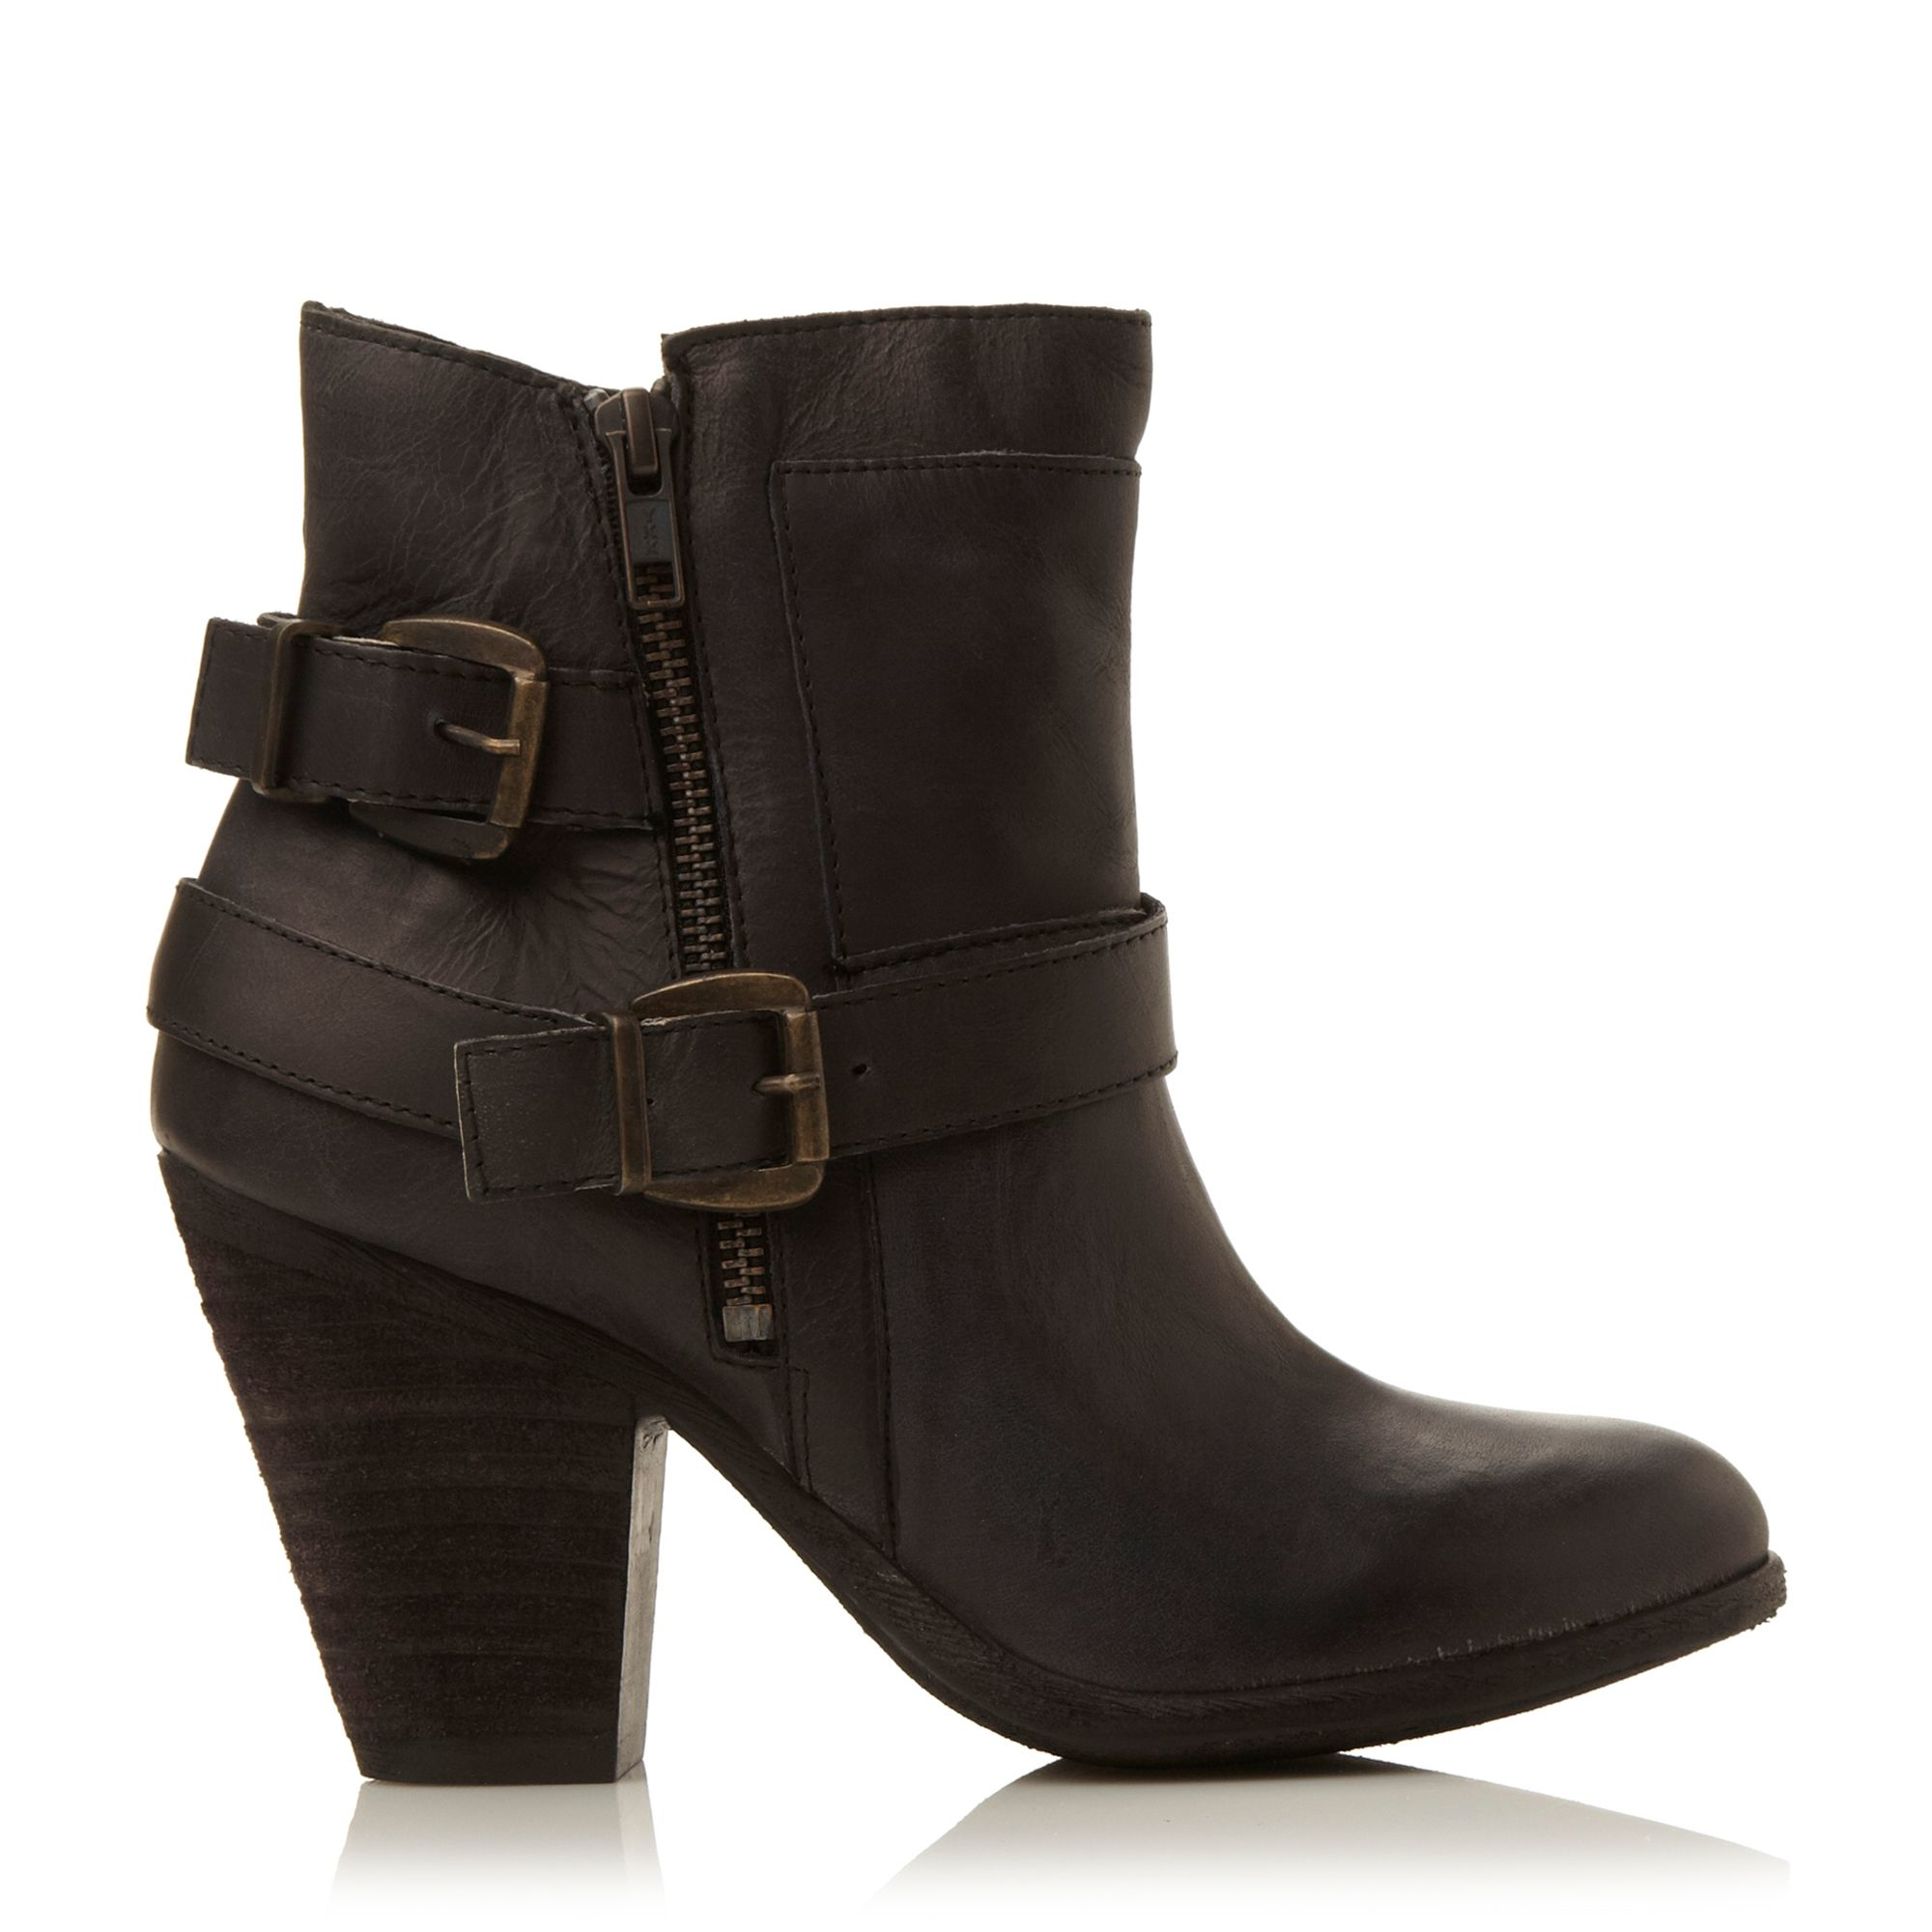 Steve madden Nother Western Style Buckled Ankle Boot in ...